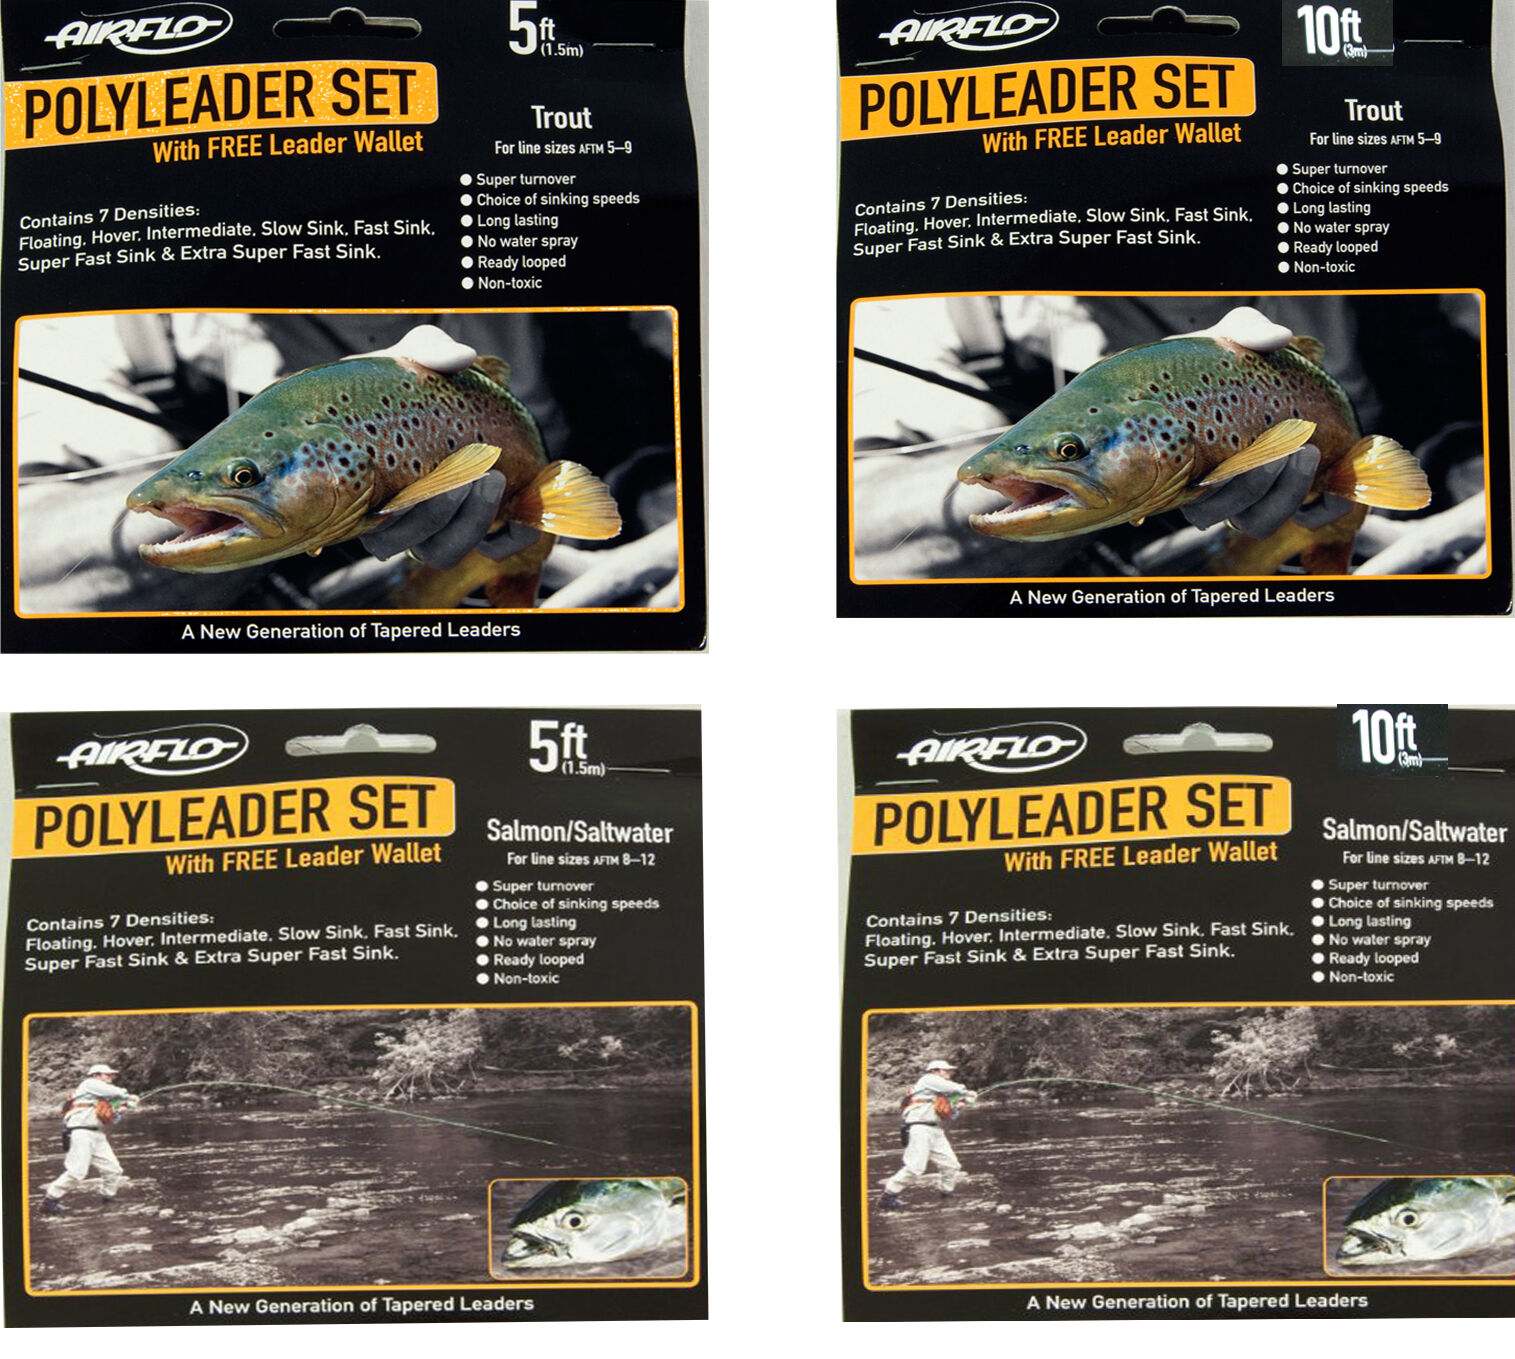 Airflo Poly Leader Set 5ft   10ft Trout or Salmon Saltwater + Free Wallet